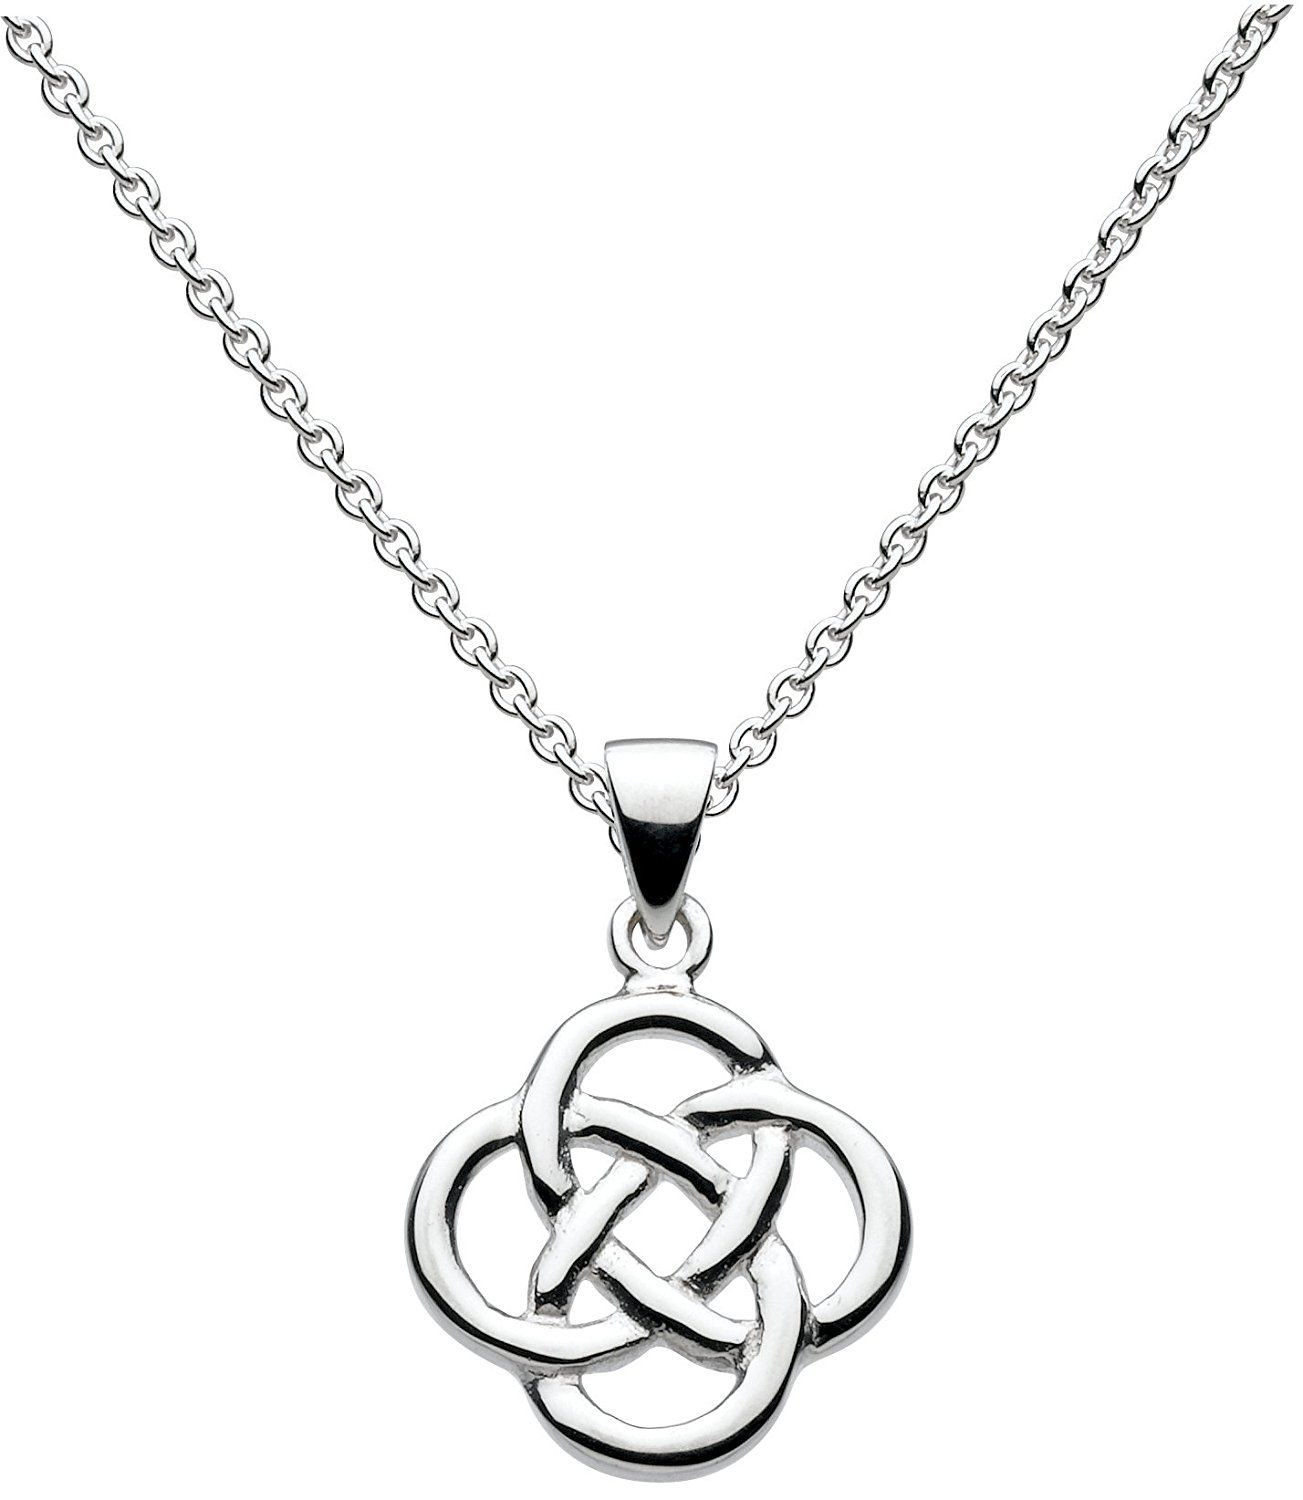 Heritage Women's Sterling Silver Celtic Knot Necklace of Length 18 inch 3NGalMA